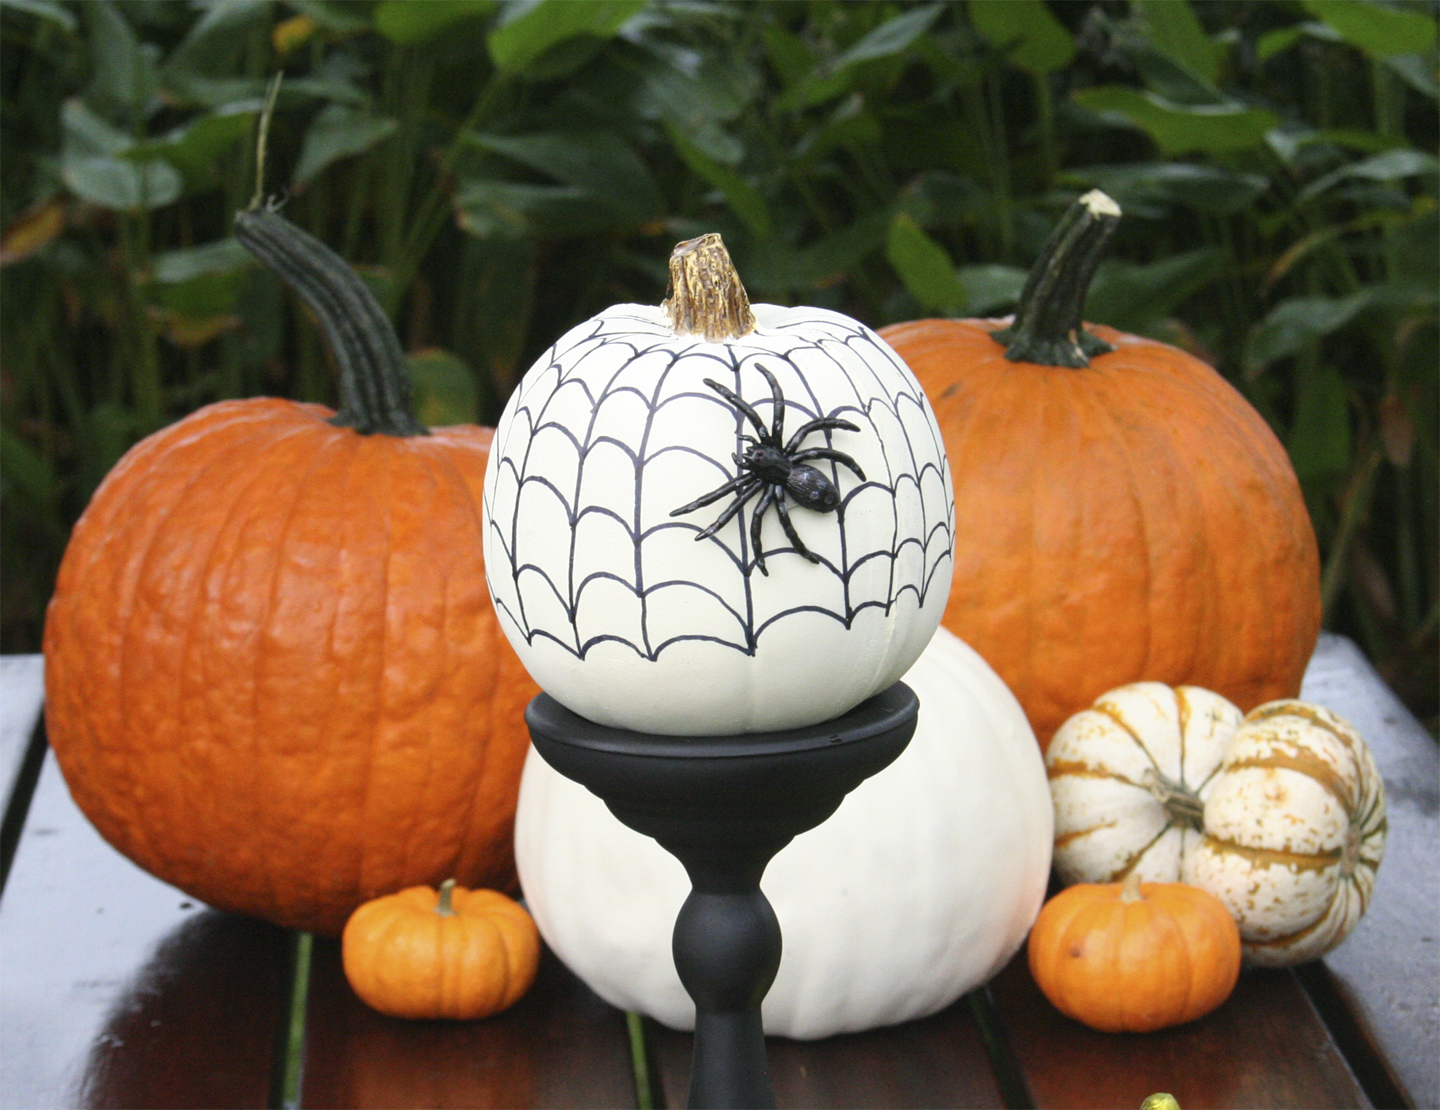 Look out! The spider has woven his web on this mini pumpkin